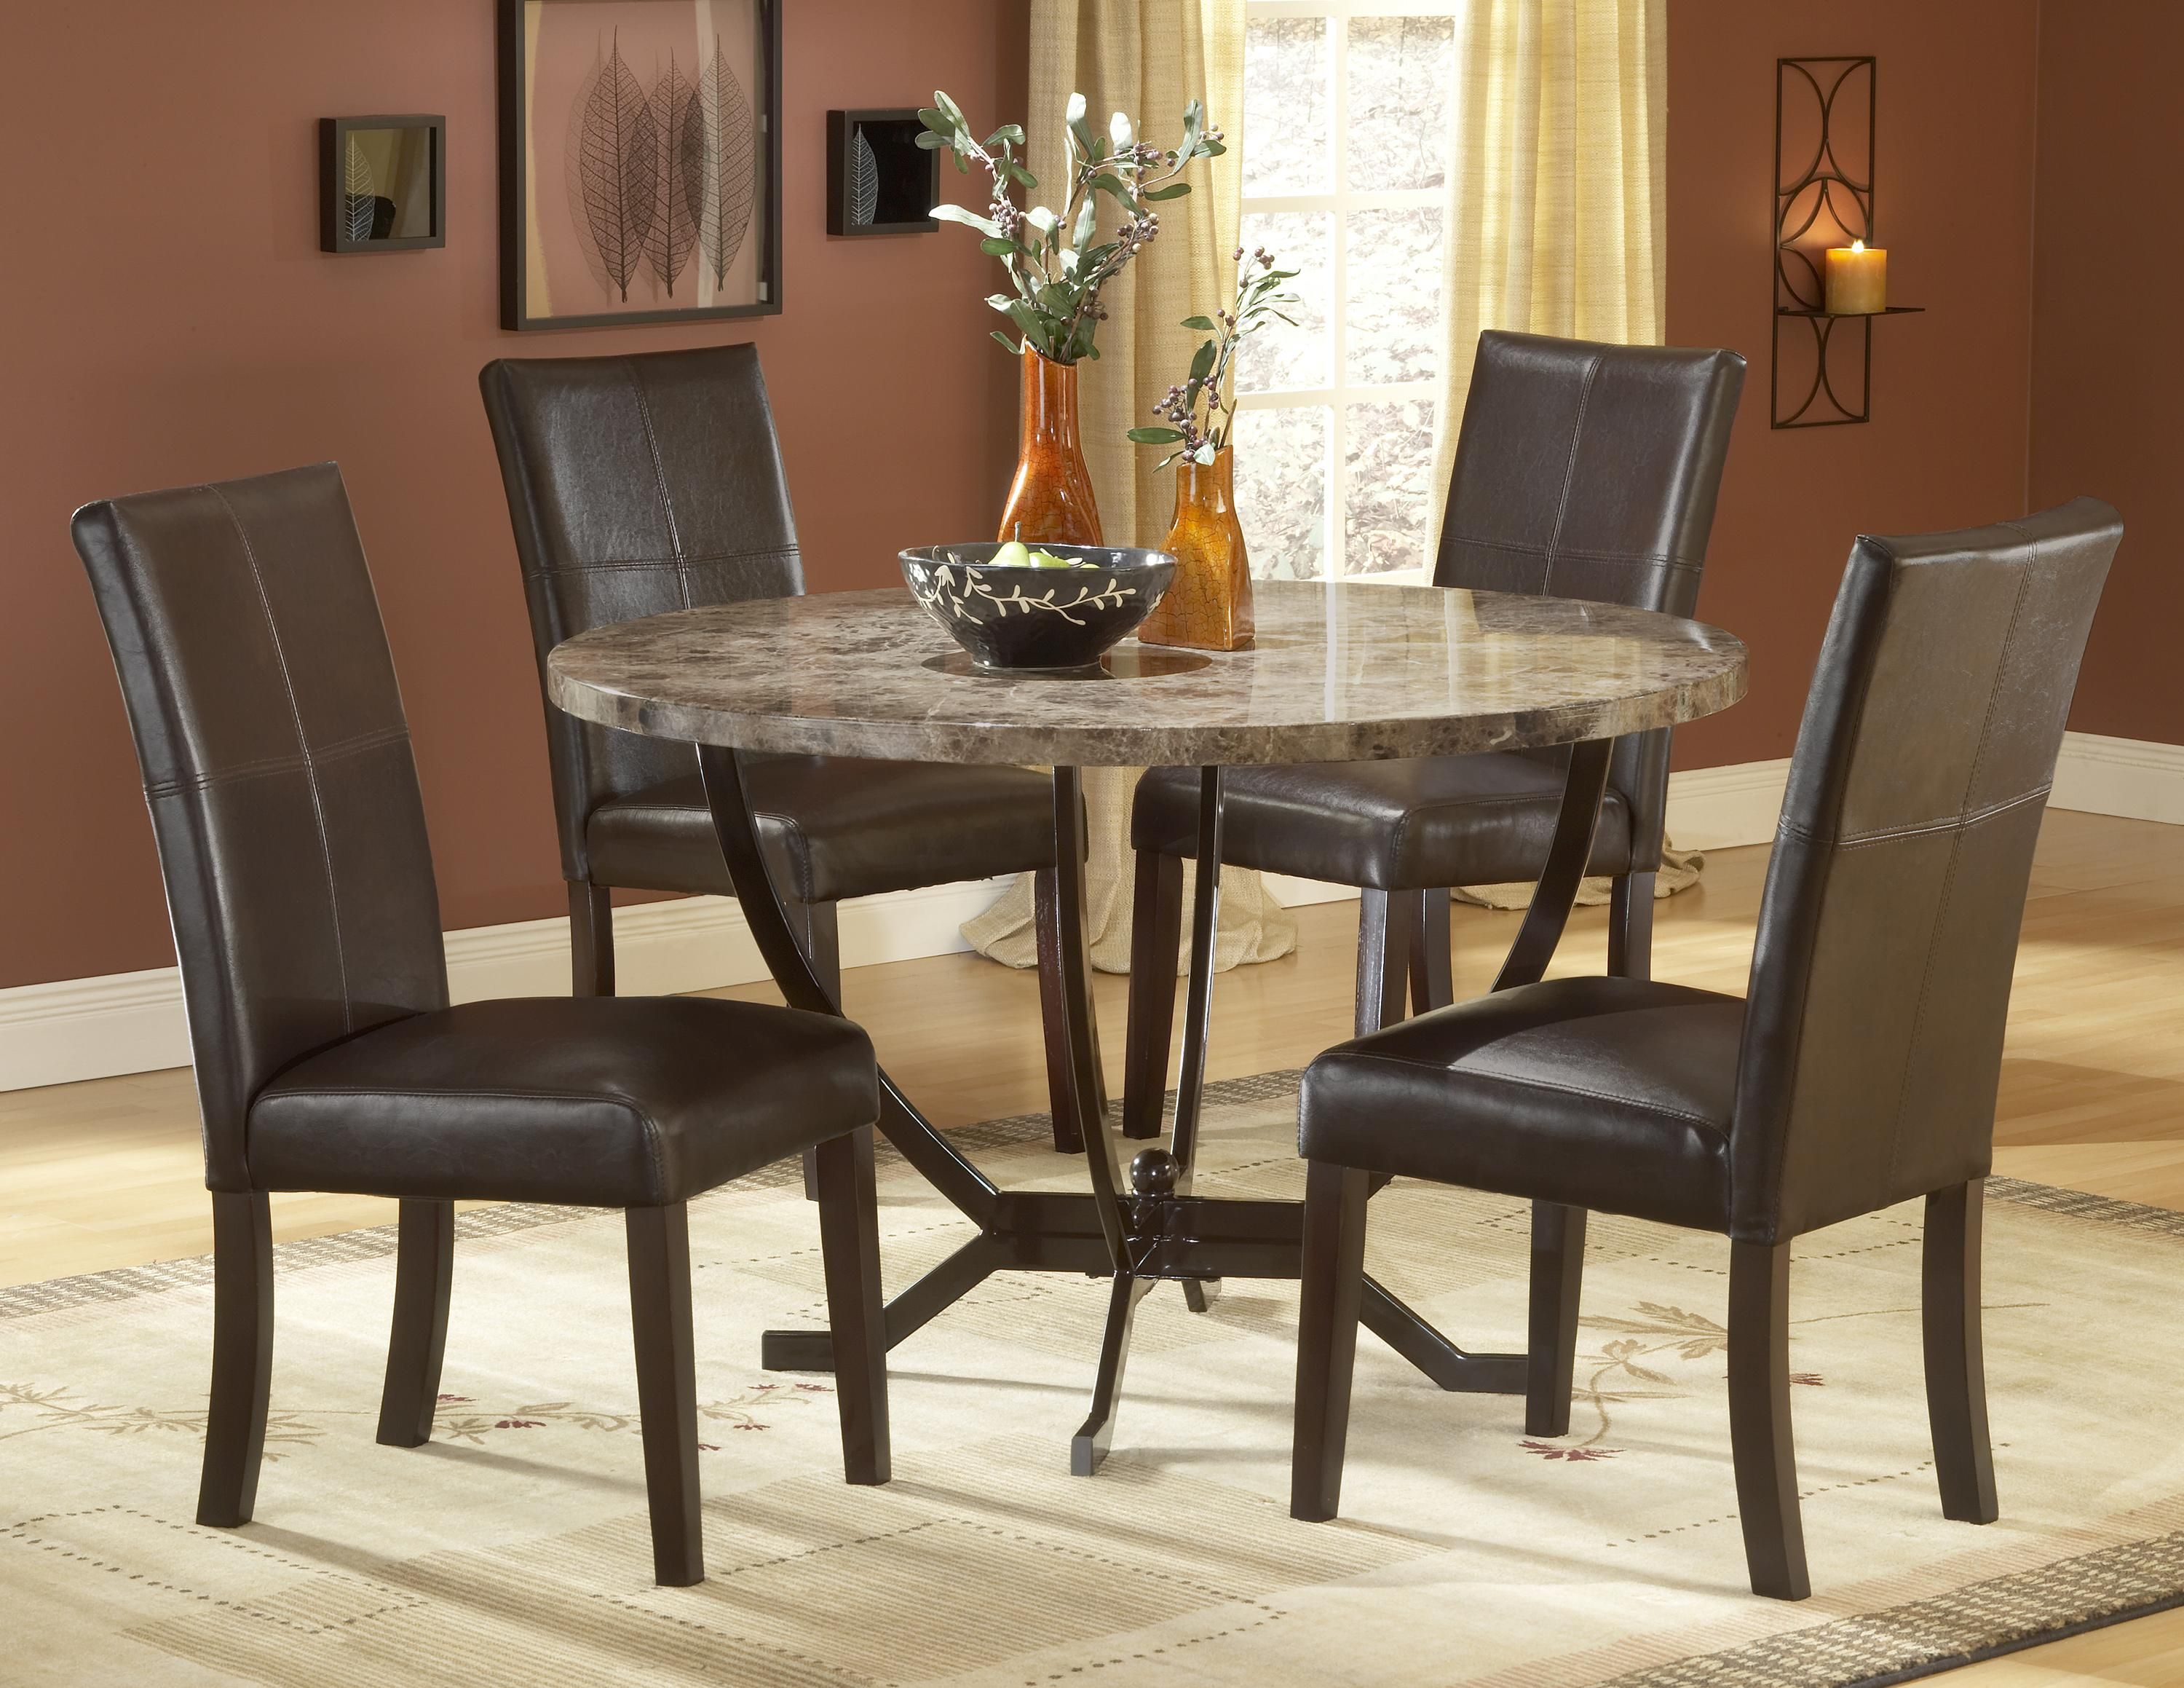 10 Small Set Design Round dining table sets